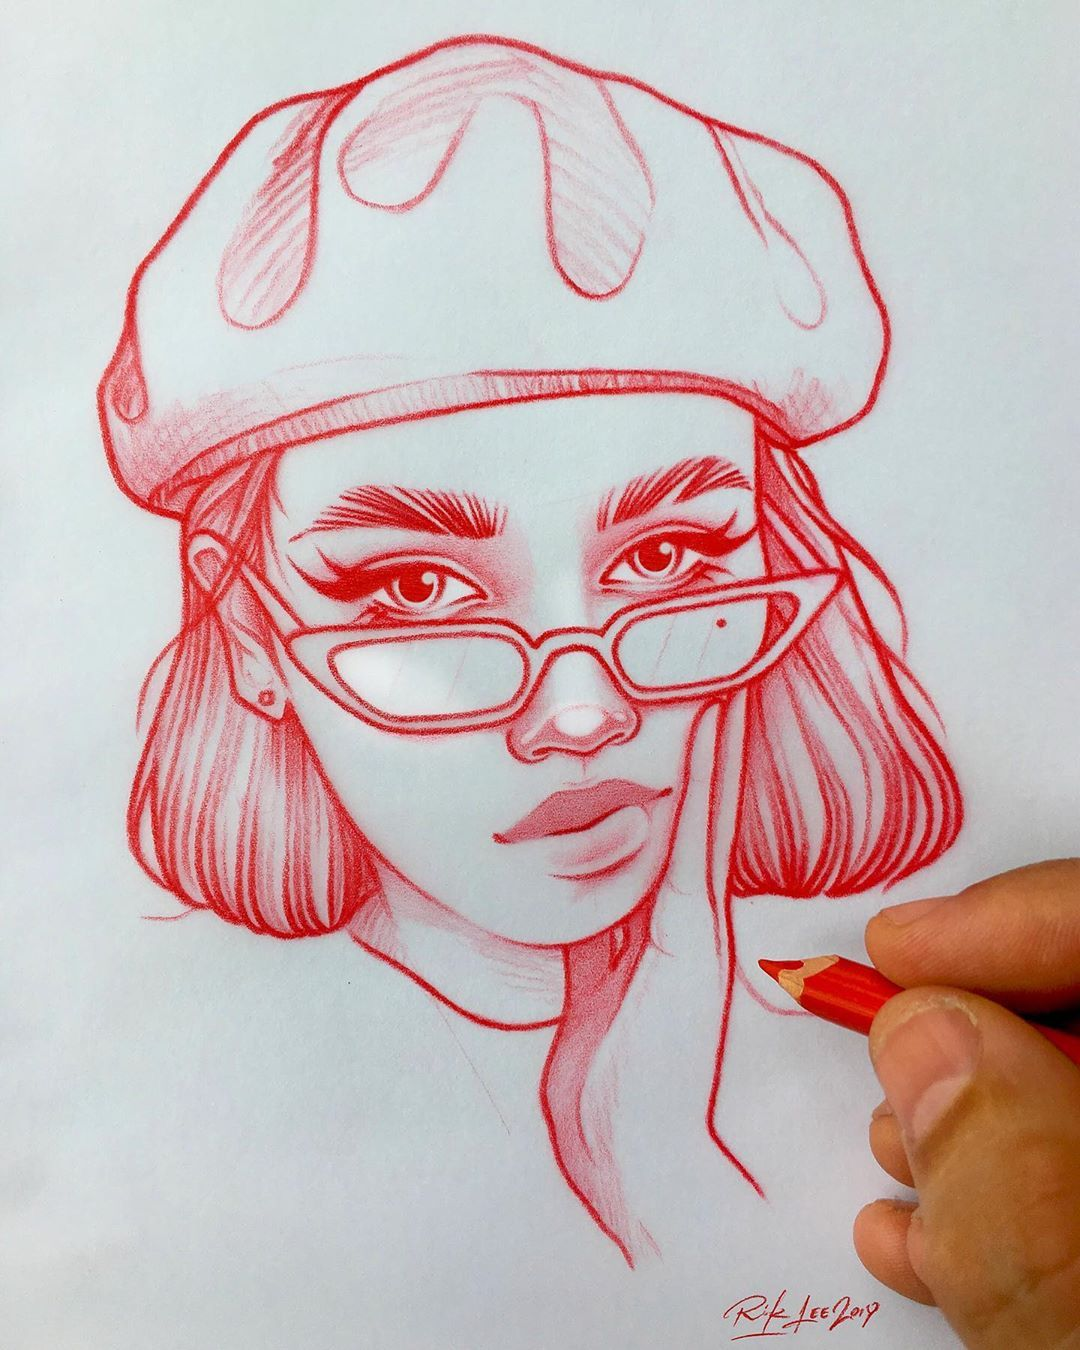 Rik Lee Sur Instagram She Wore A Raspberry Beret The Kind You Find In A Second Hand Store Or Is S Art Sketches Art Drawings Sketches Cool Art Drawings